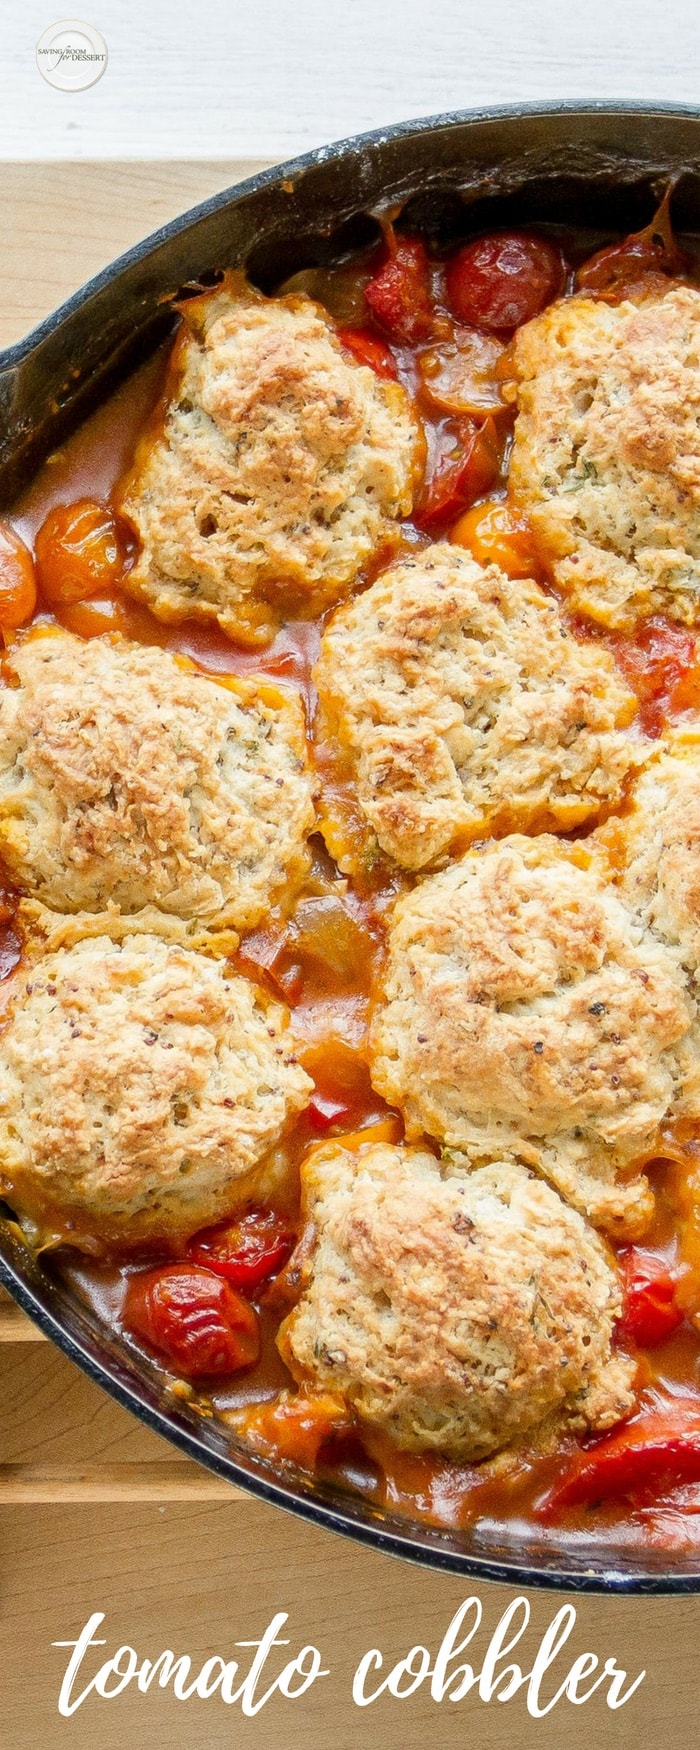 Savory Tomato Cobbler - it's hard to come up with enough superlatives to describe thiswonderful, delicious, slightly sweet, savory, rich and absolutely delightful Tomato Cobbler direct from our garden to the table! #savingroomfordessert #tomatocobbler #cobbler #savorycobbler #summercobbler #tomato